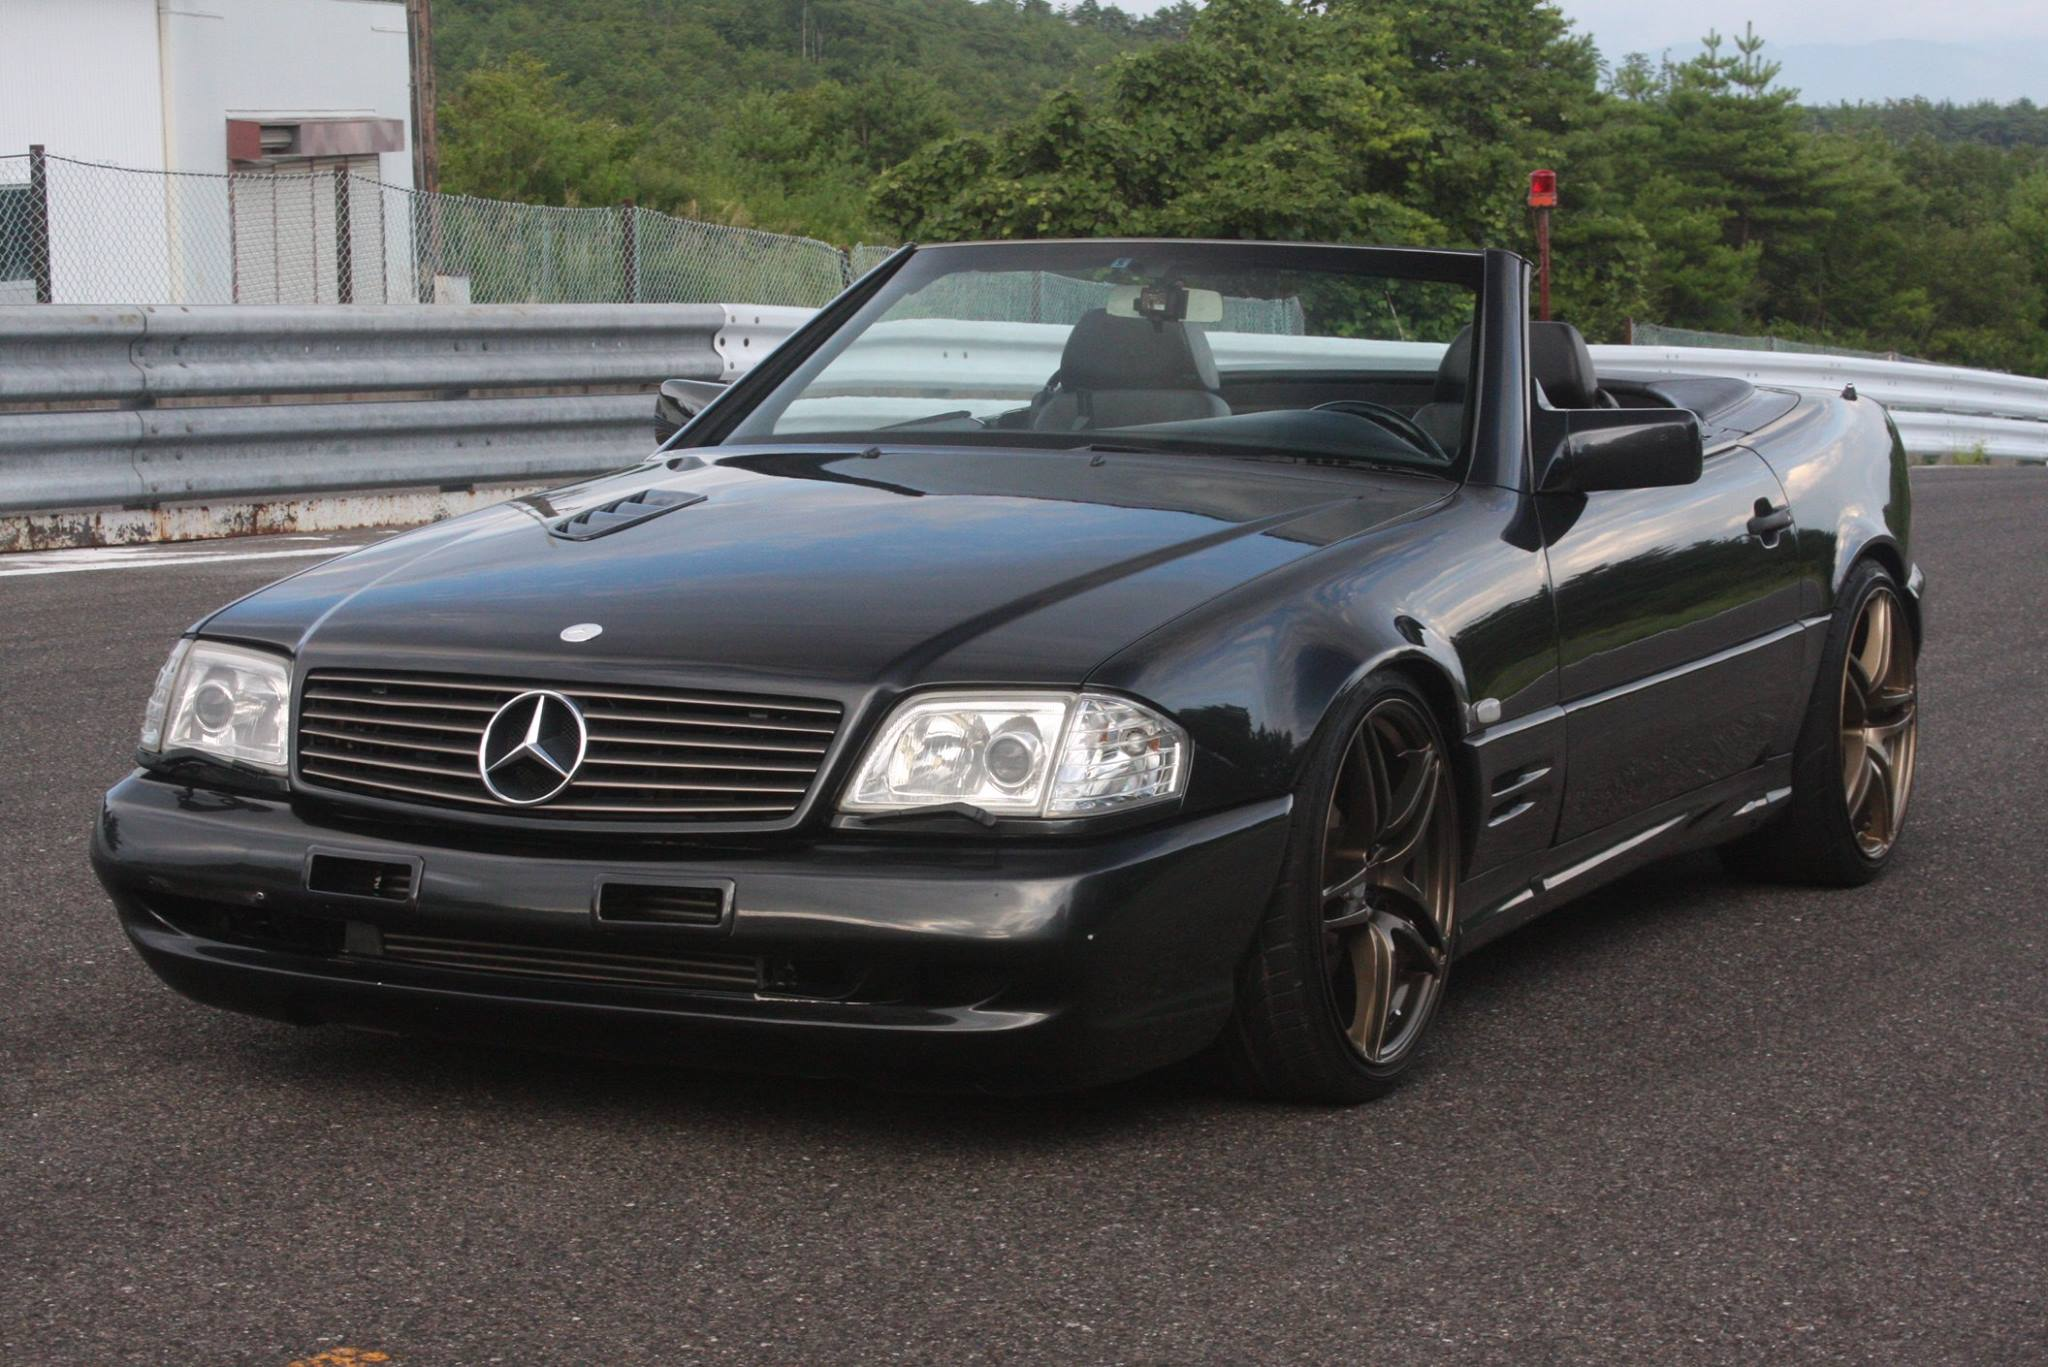 1991 Mercedes 500SL with a 2JZ GTE 01 1991 mercedes 500sl with a 2jz gte engine swap depot  at crackthecode.co